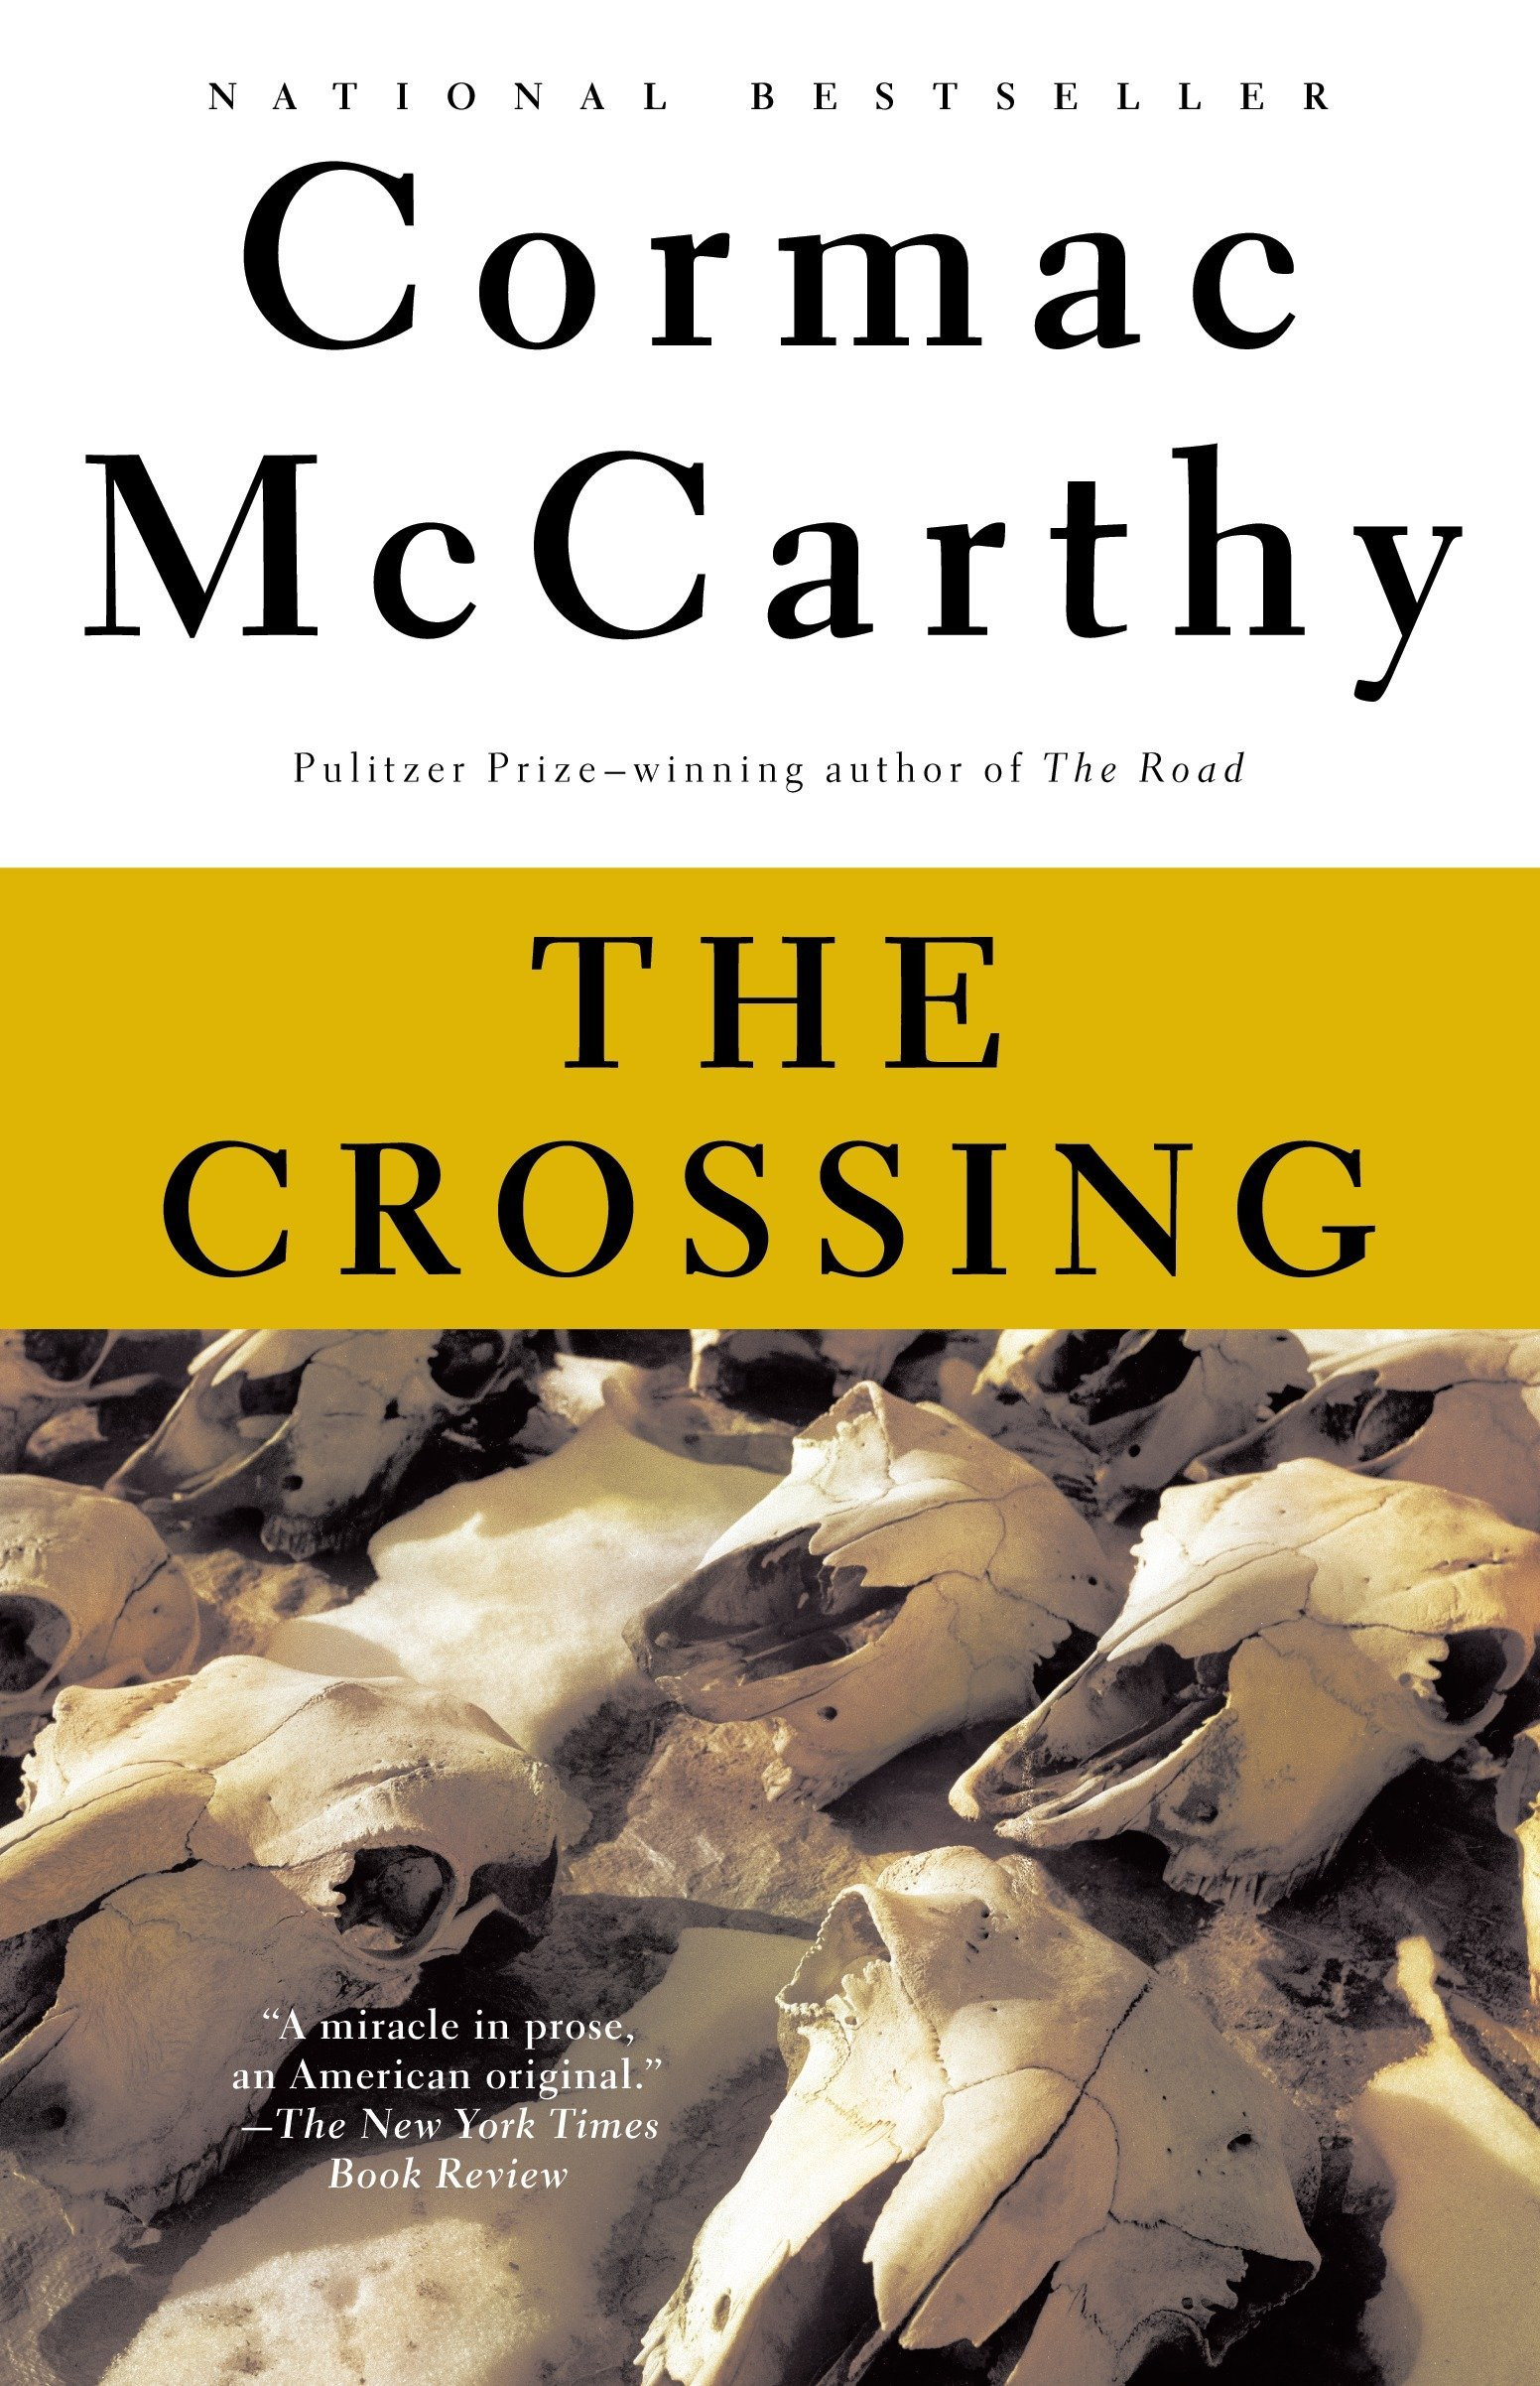 The Crossing_Cormac McCarthy